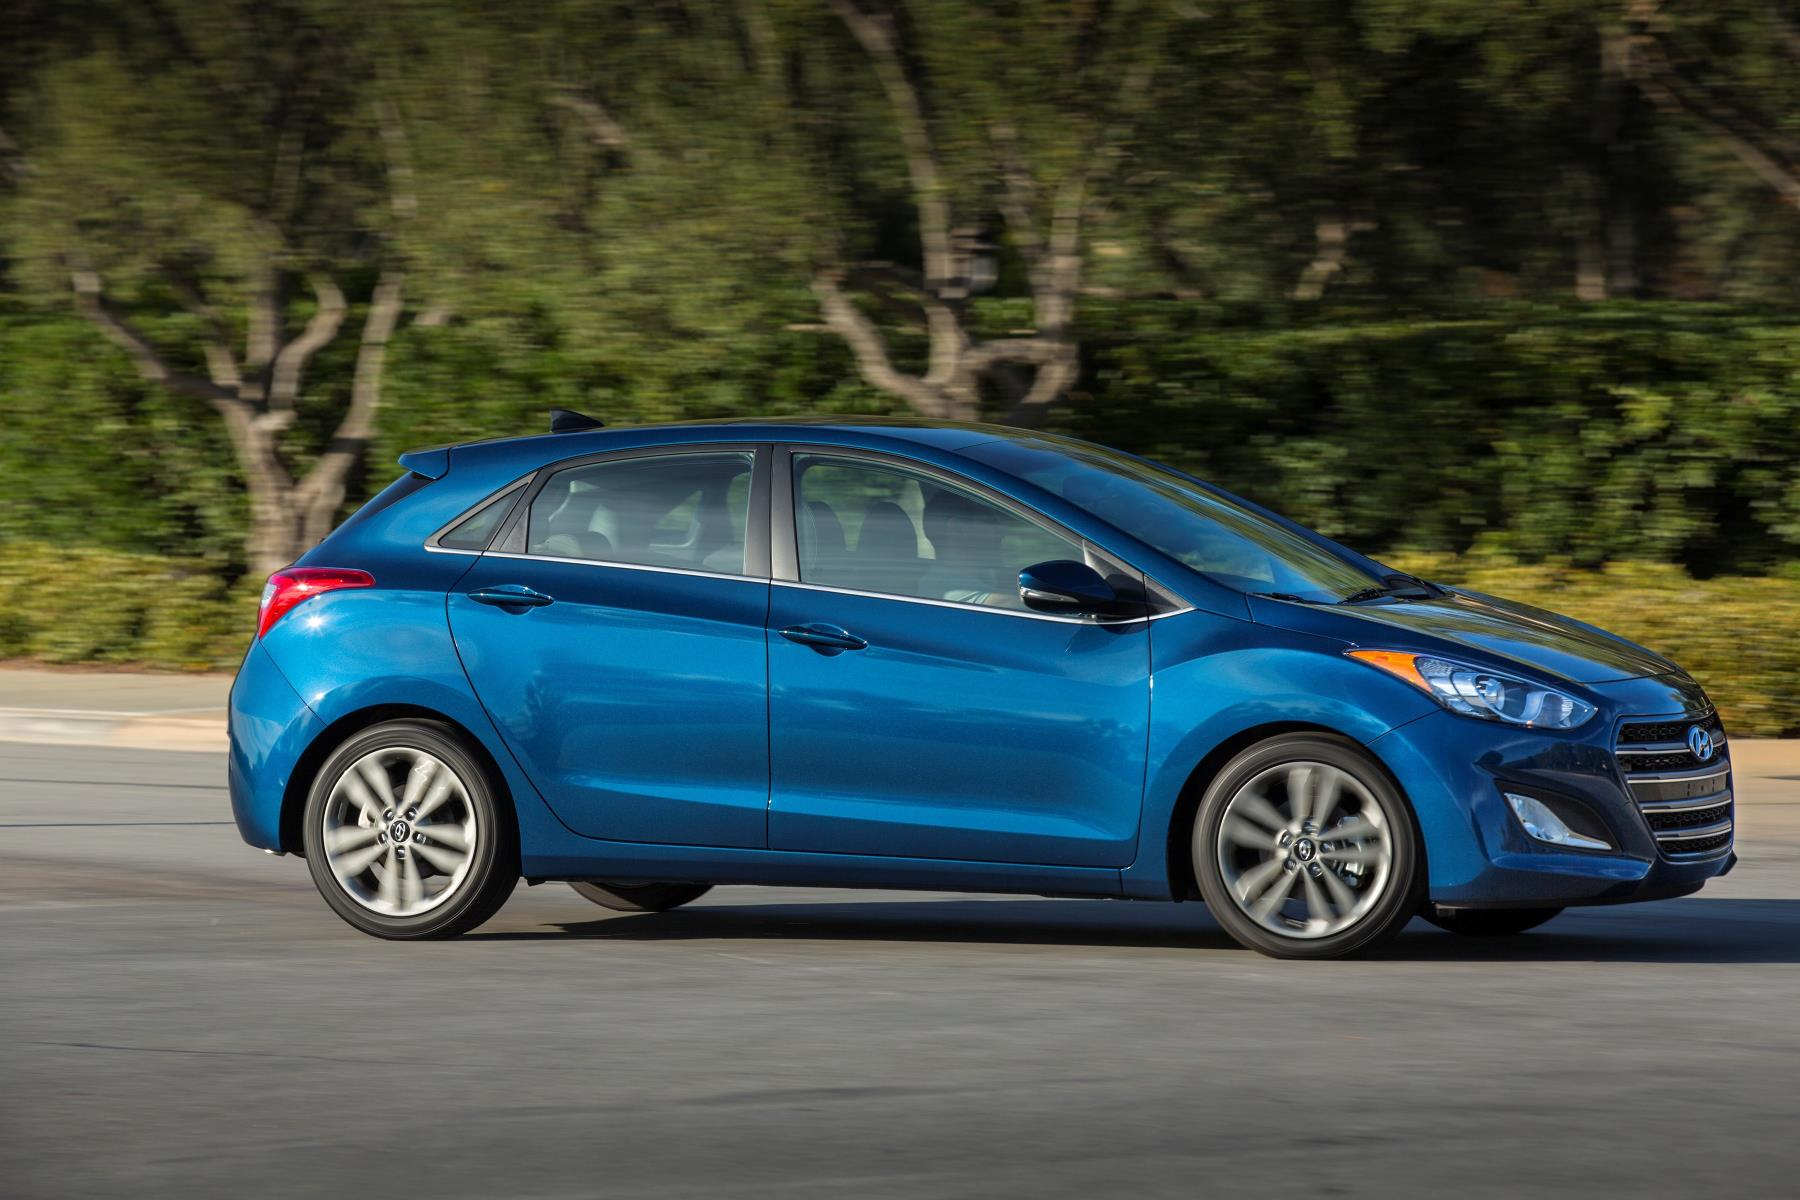 2017 Hyundai Sonata Plug In Hybrid >> 2017 Hyundai Elantra GT Adds Apple CarPlay and Android ...